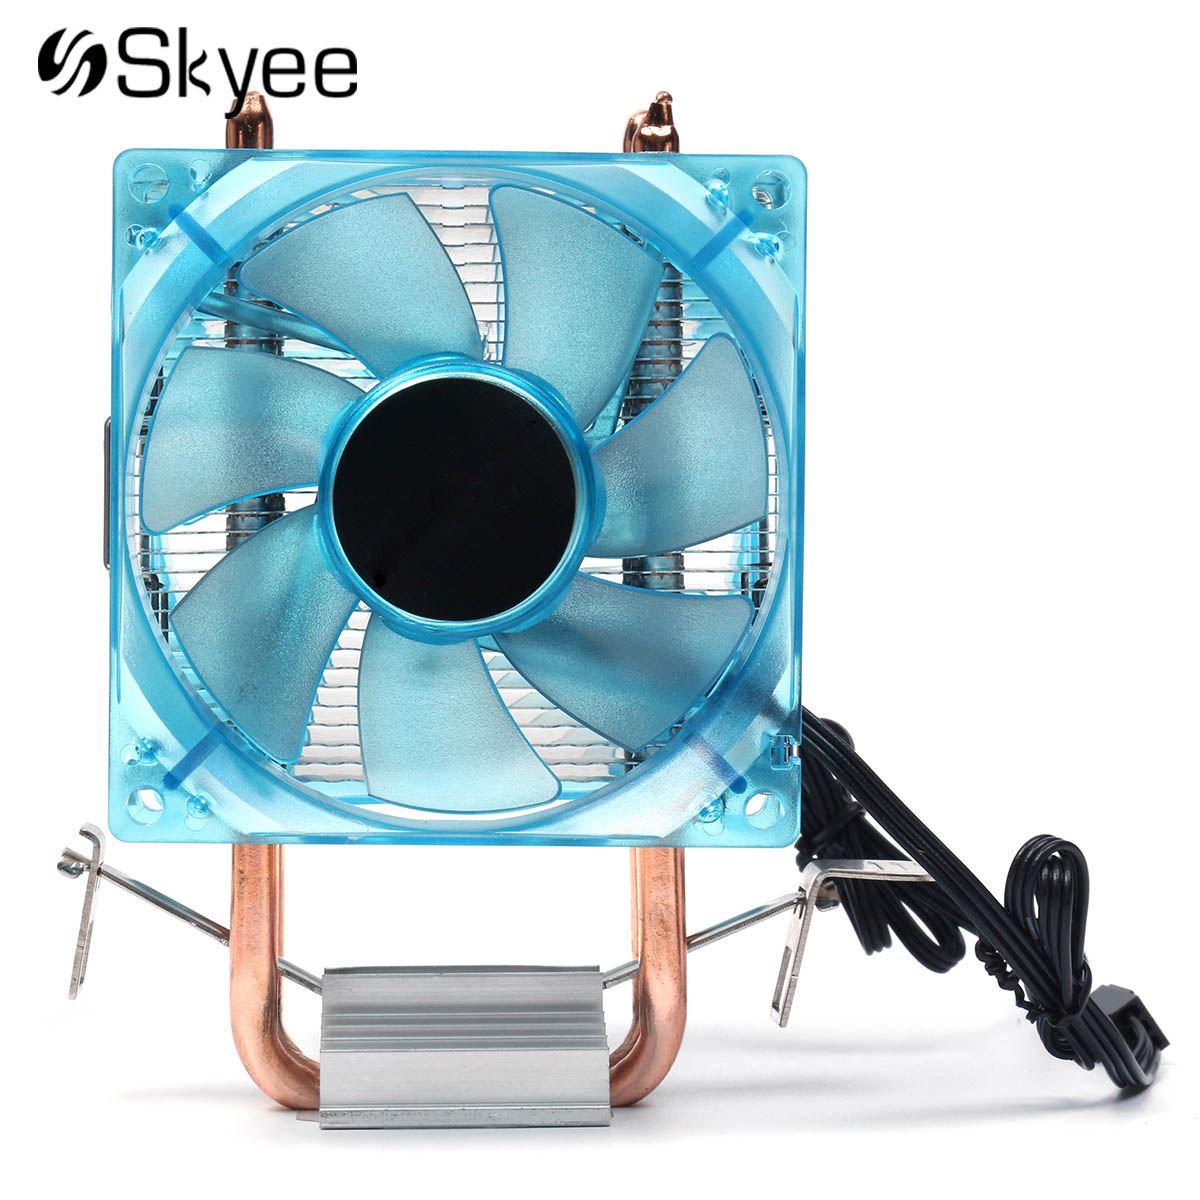 2018 LED CPU Cooling Fan 90mm Dual Copper Pipe Aluminum Heatsink Cooler Cooling Fan for AMD FM1 AM2 + AM3 +Intel 775 1155 1156 3pin 12v cpu cooling cooler copper and aluminum 110w heat pipe heatsink fan for intel lga1150 amd computer cooler cooling fan